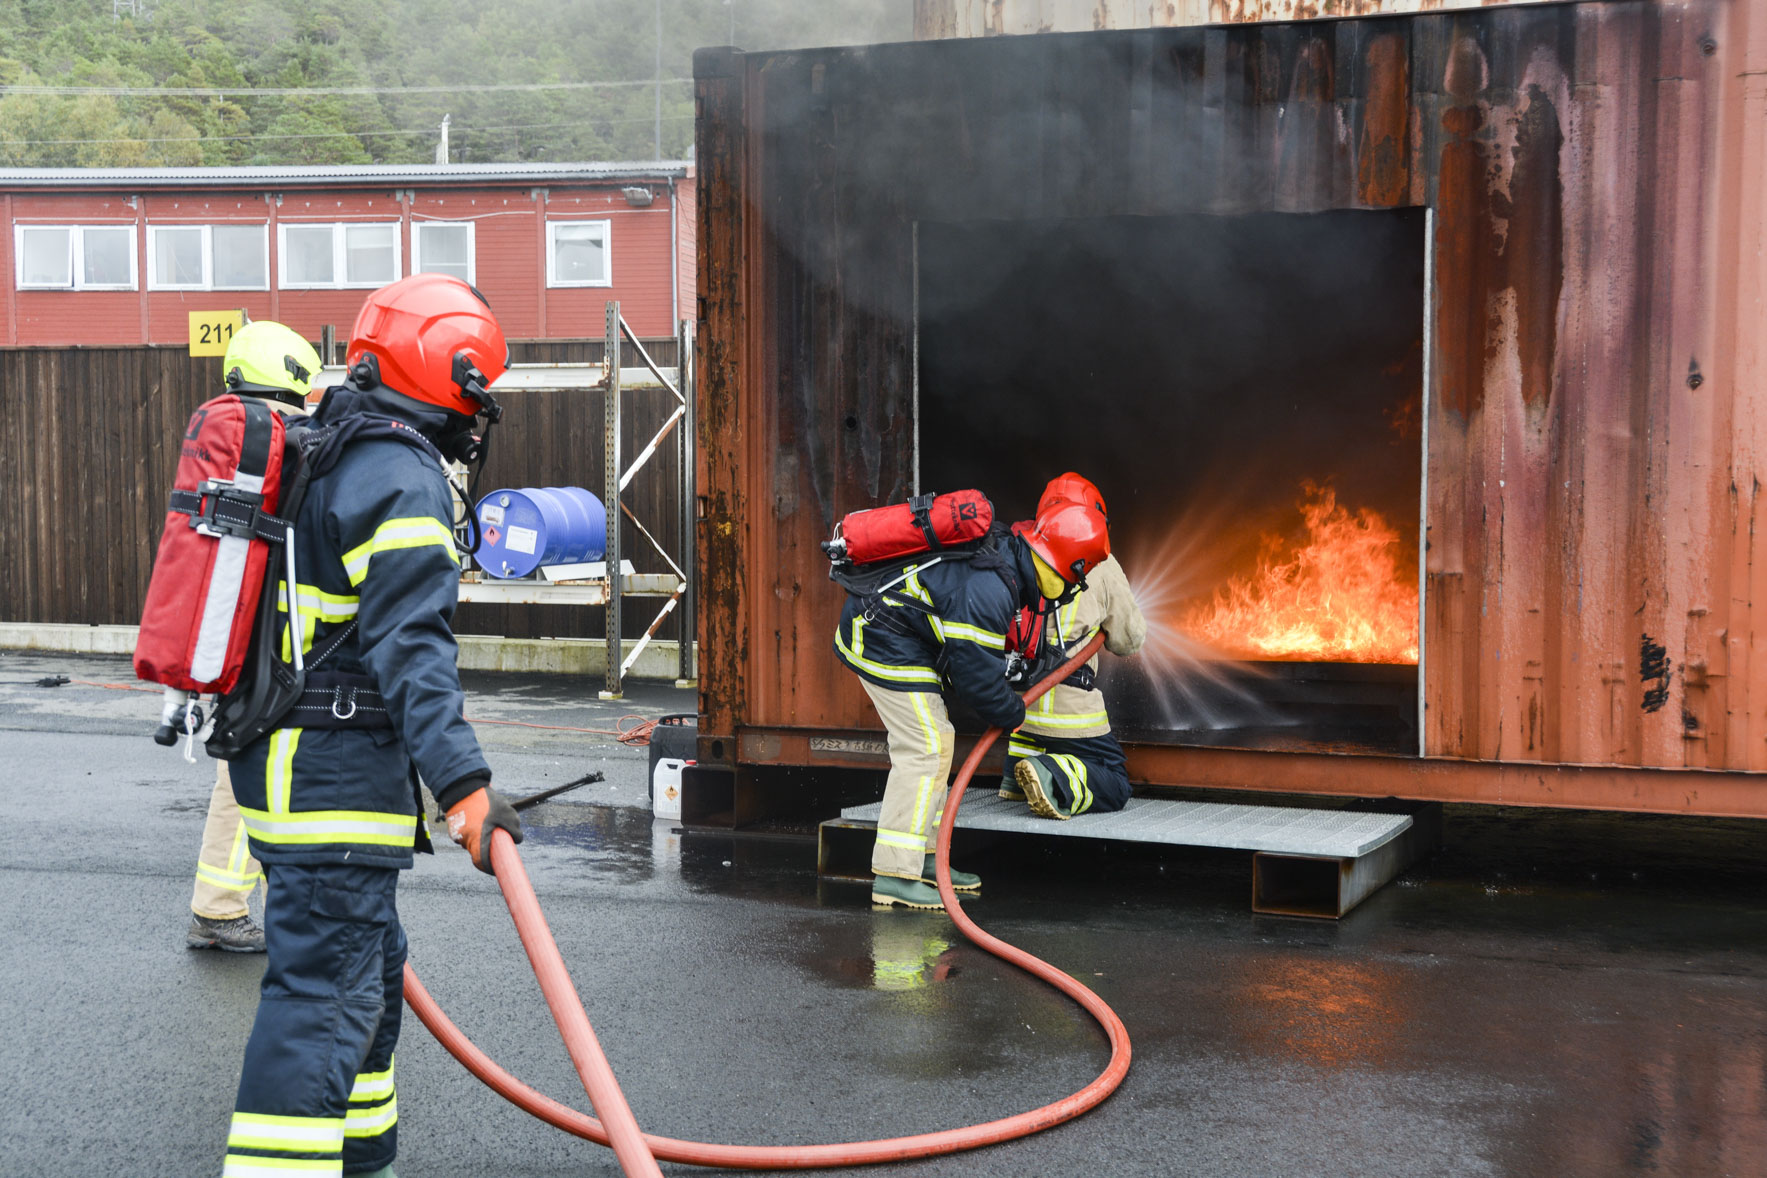 STCW A-VI/2-1 - VI/3 - VI/4-1- Proficiency in survival craft, advanced firefighting and first aid - Combination course for ships officers -  Refresher